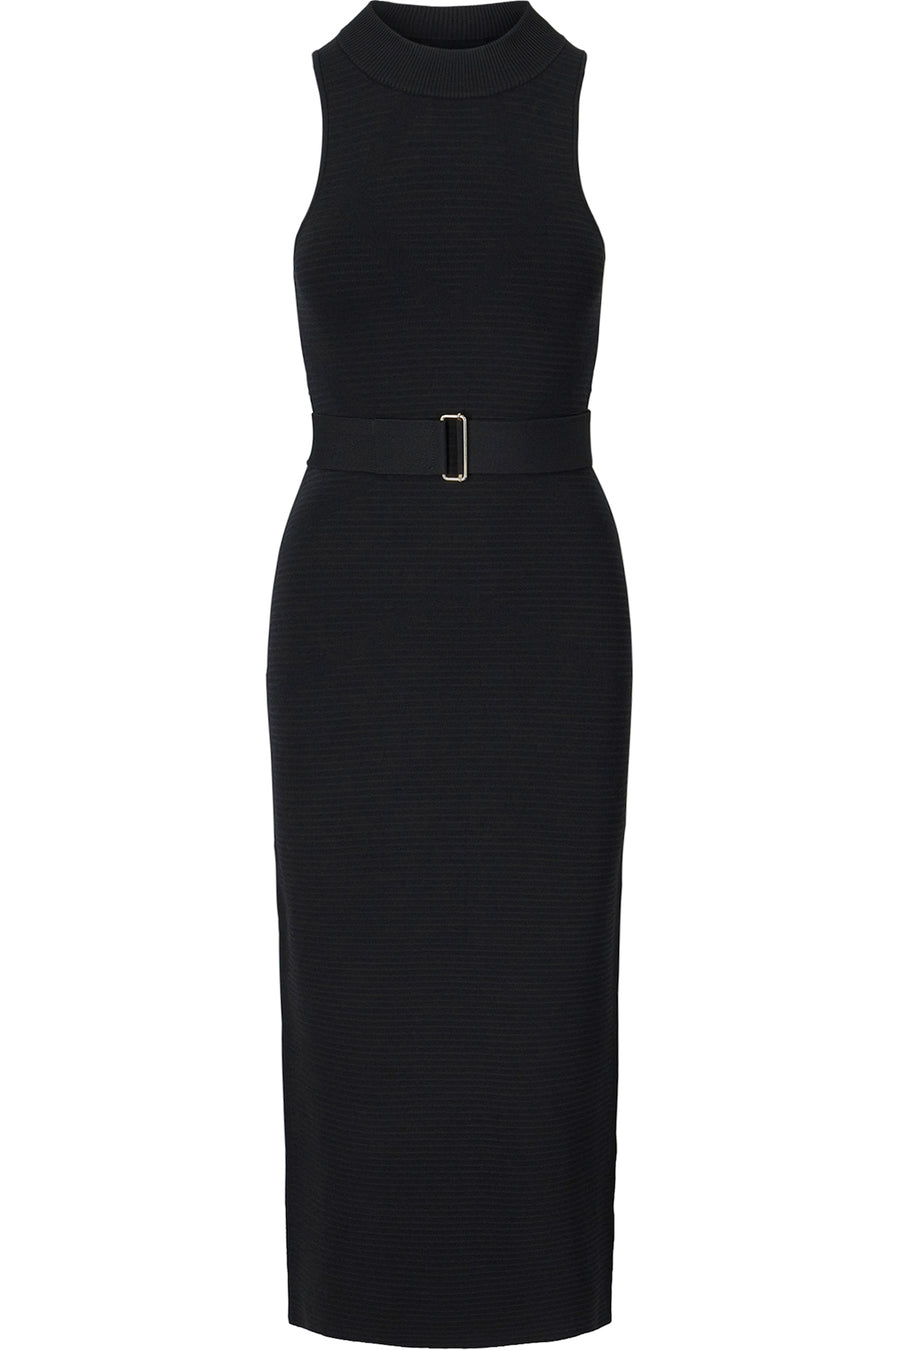 High Neck Dress - Black